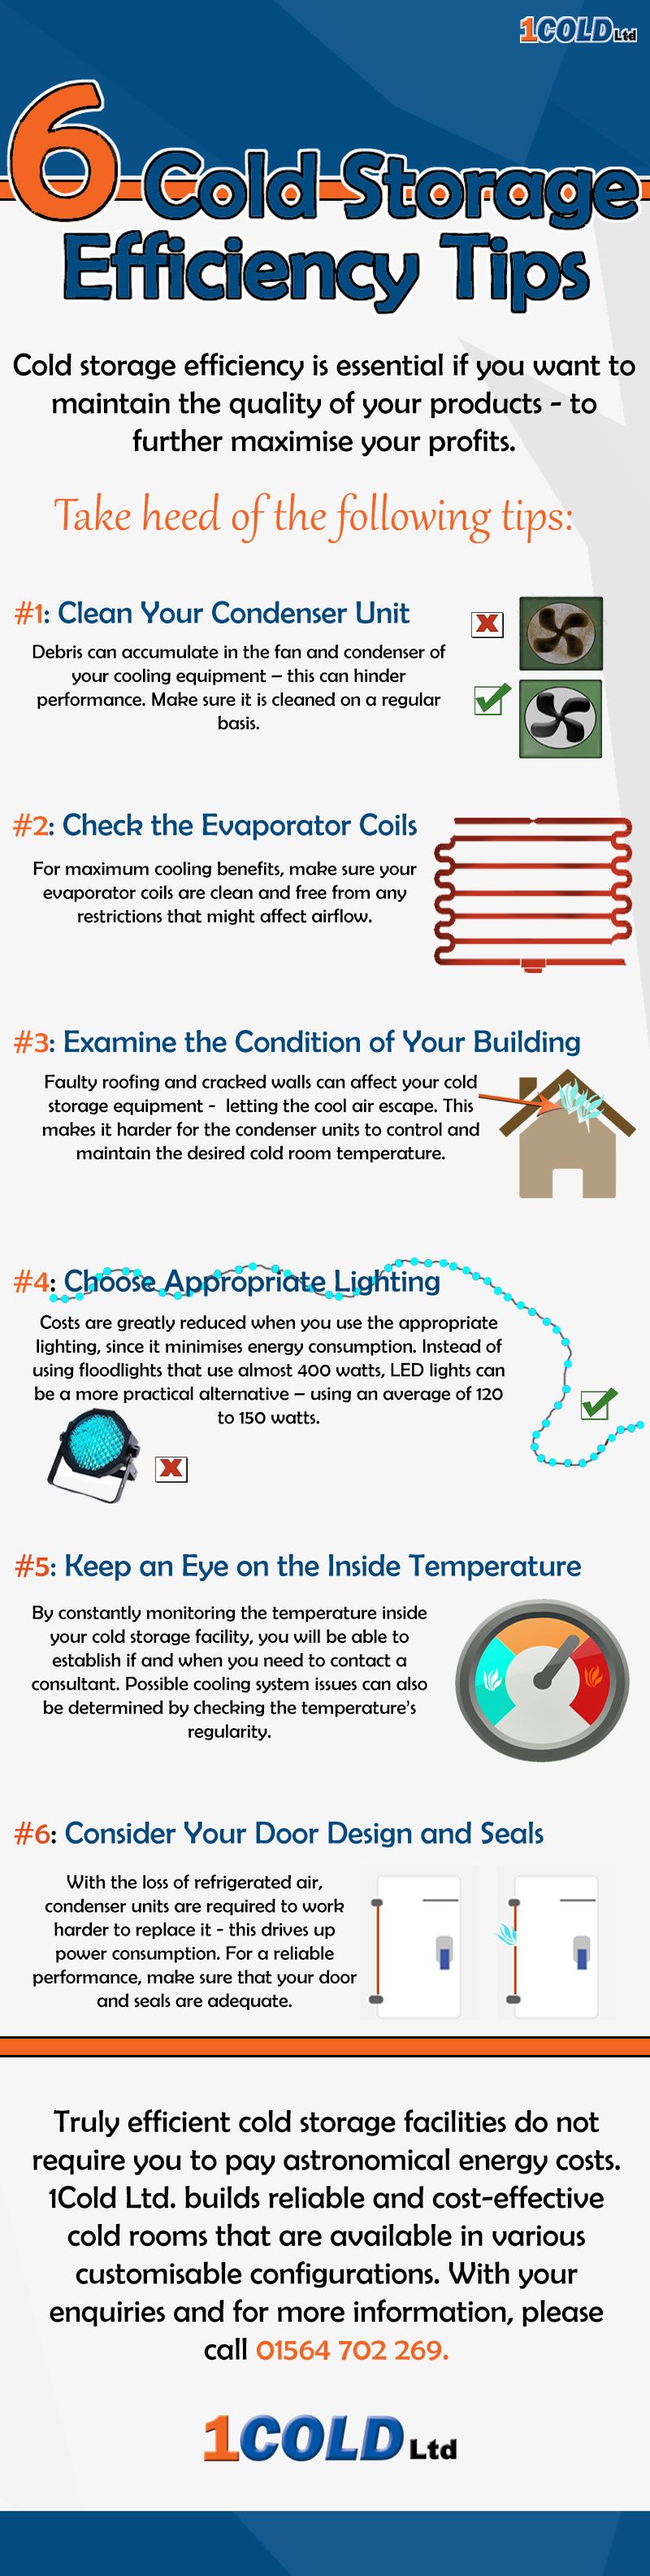 Cold Storage Efficiency Tips Infographic